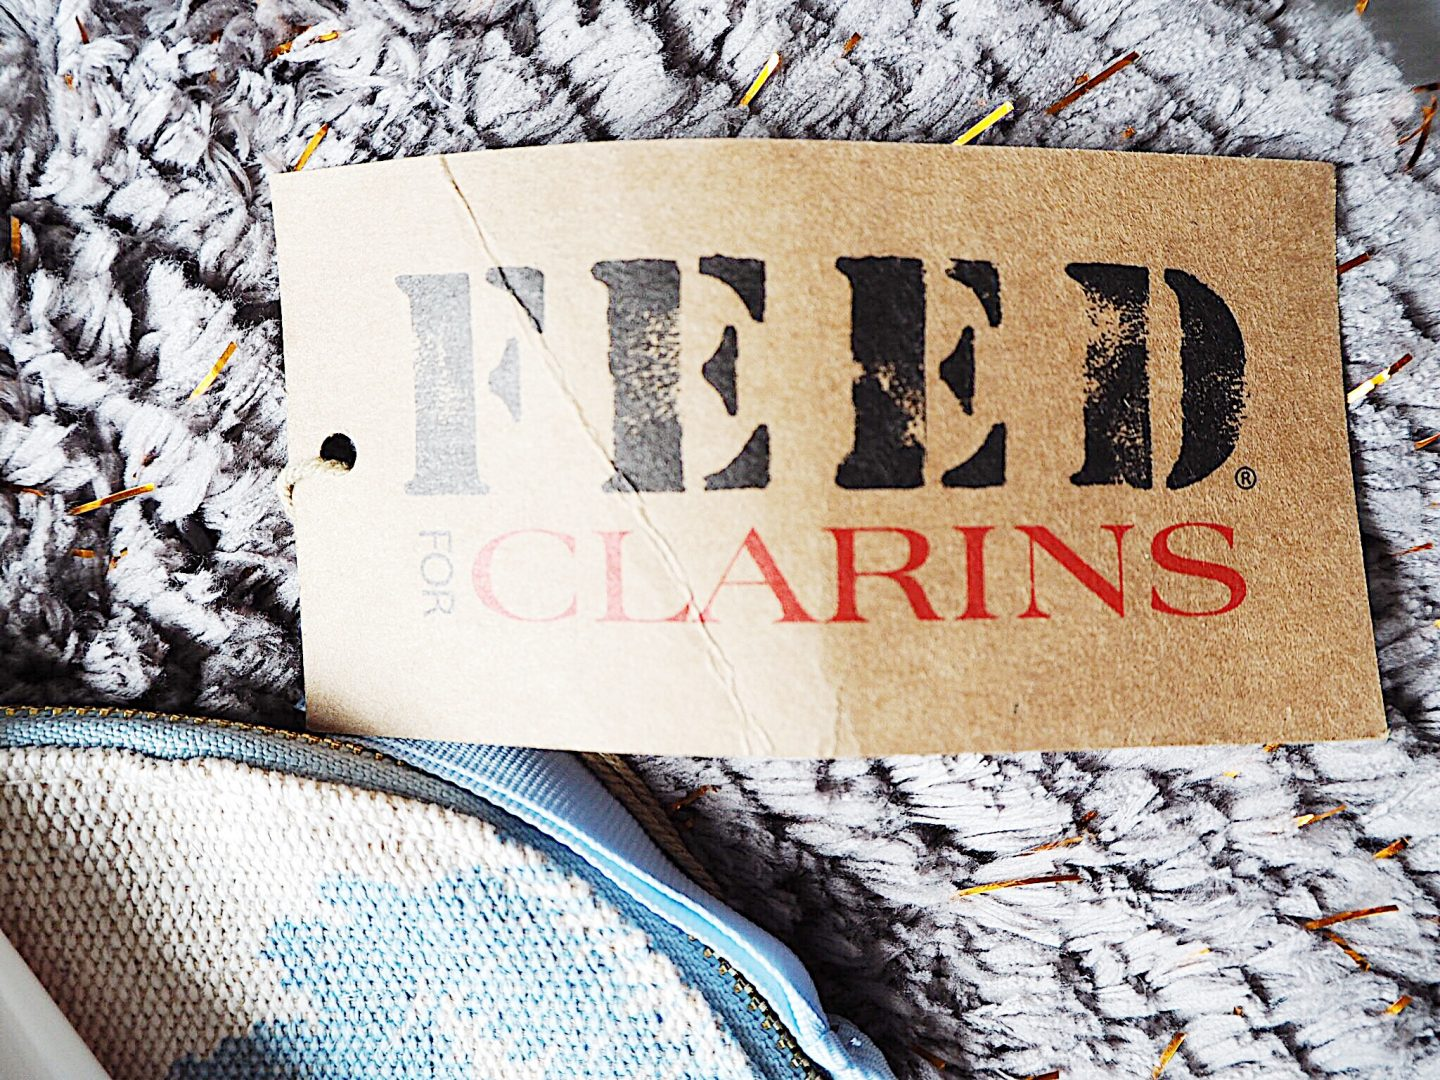 Clarins FEED Project: Brands Give Back